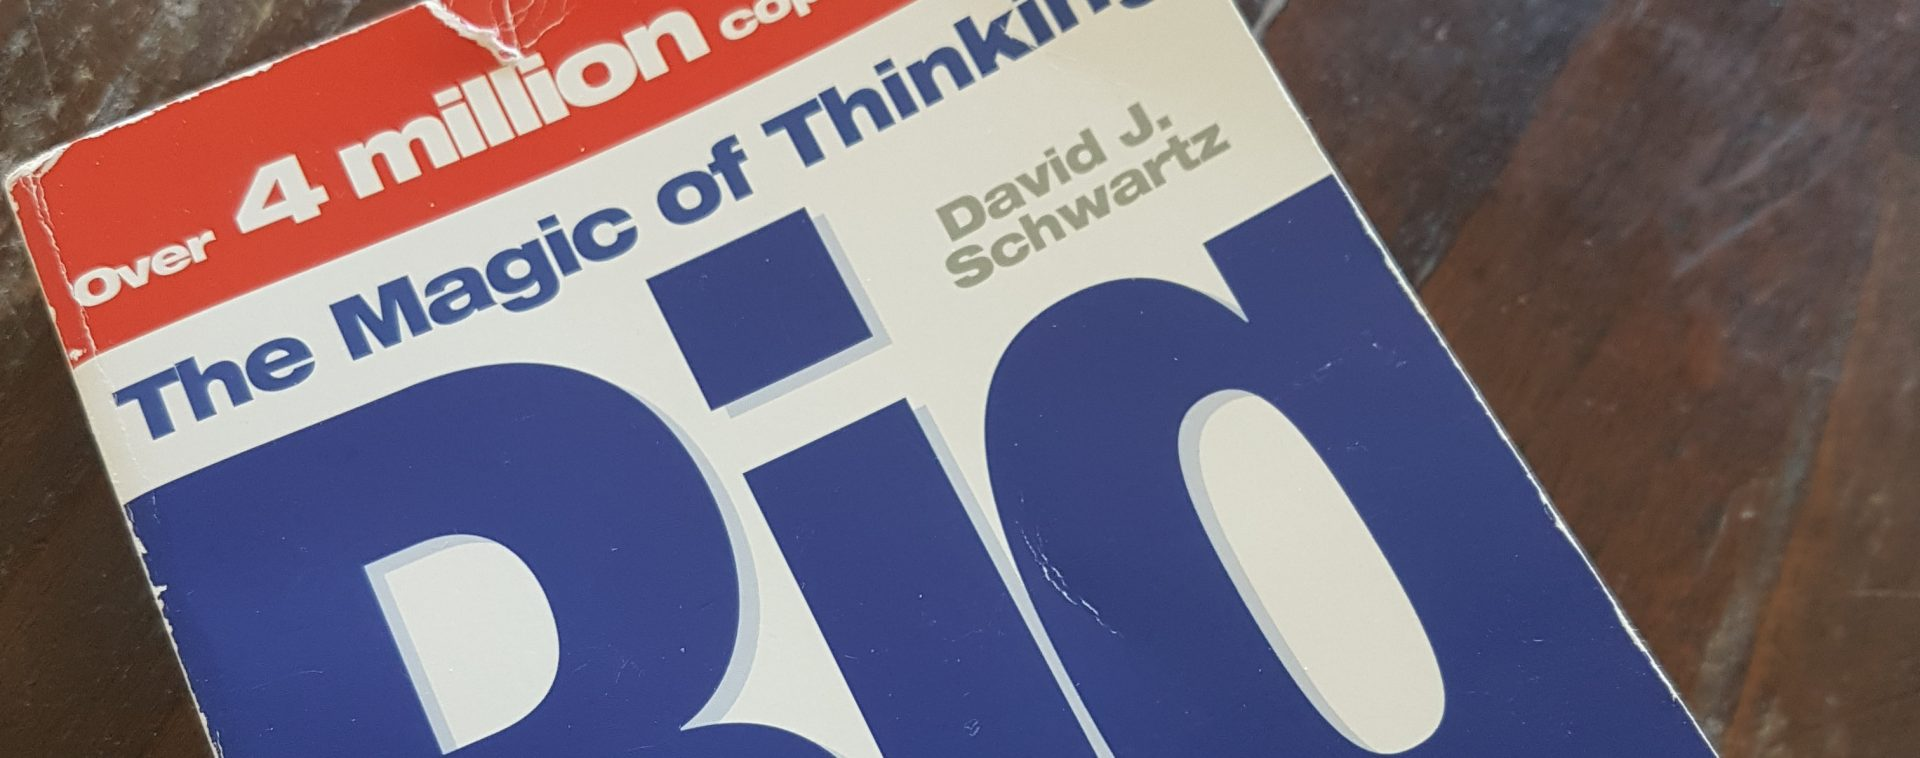 Lees het boek The Magic of Thinking Big van David J Schwarz